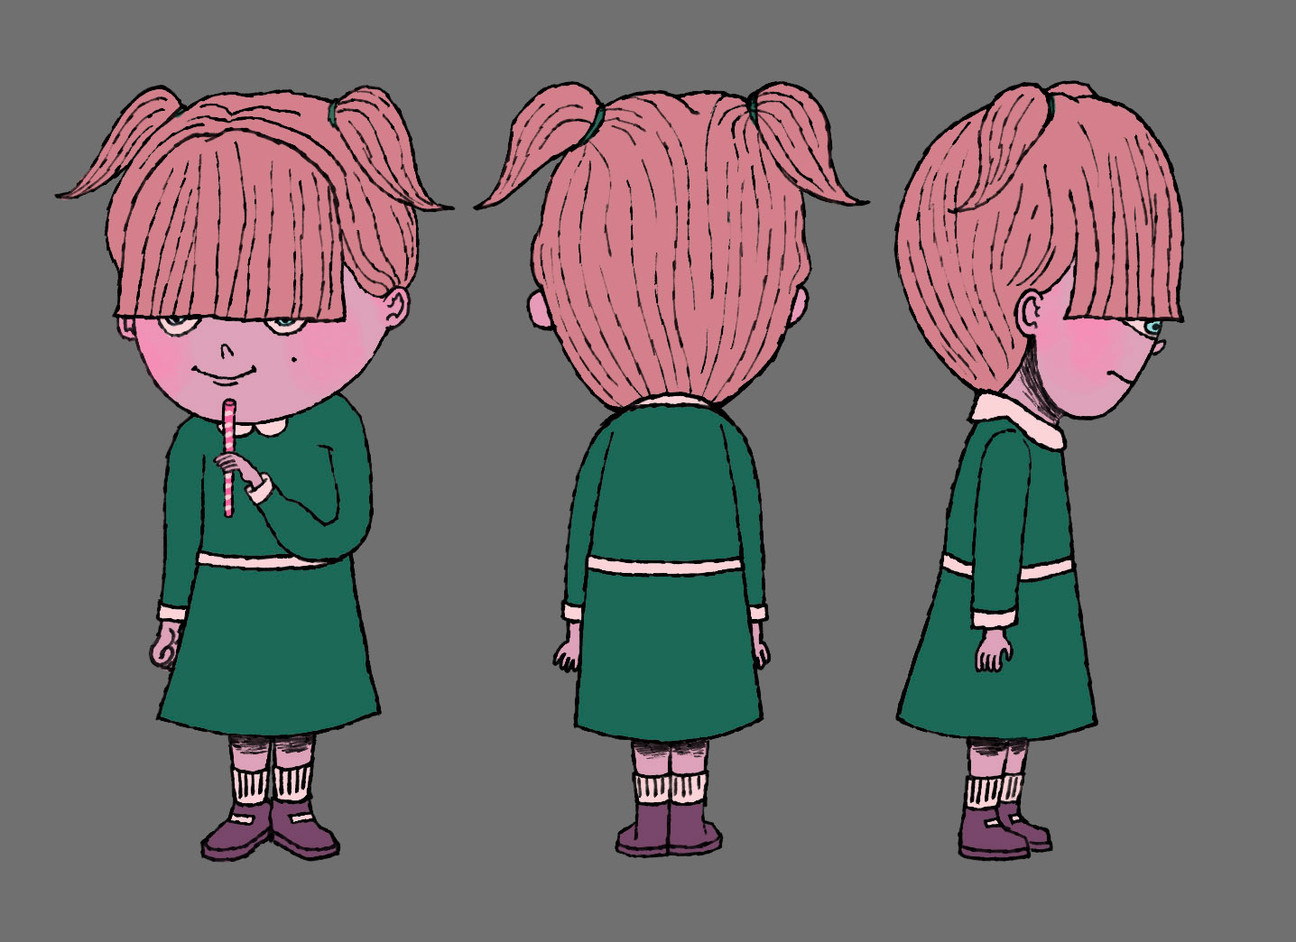 bully child character design